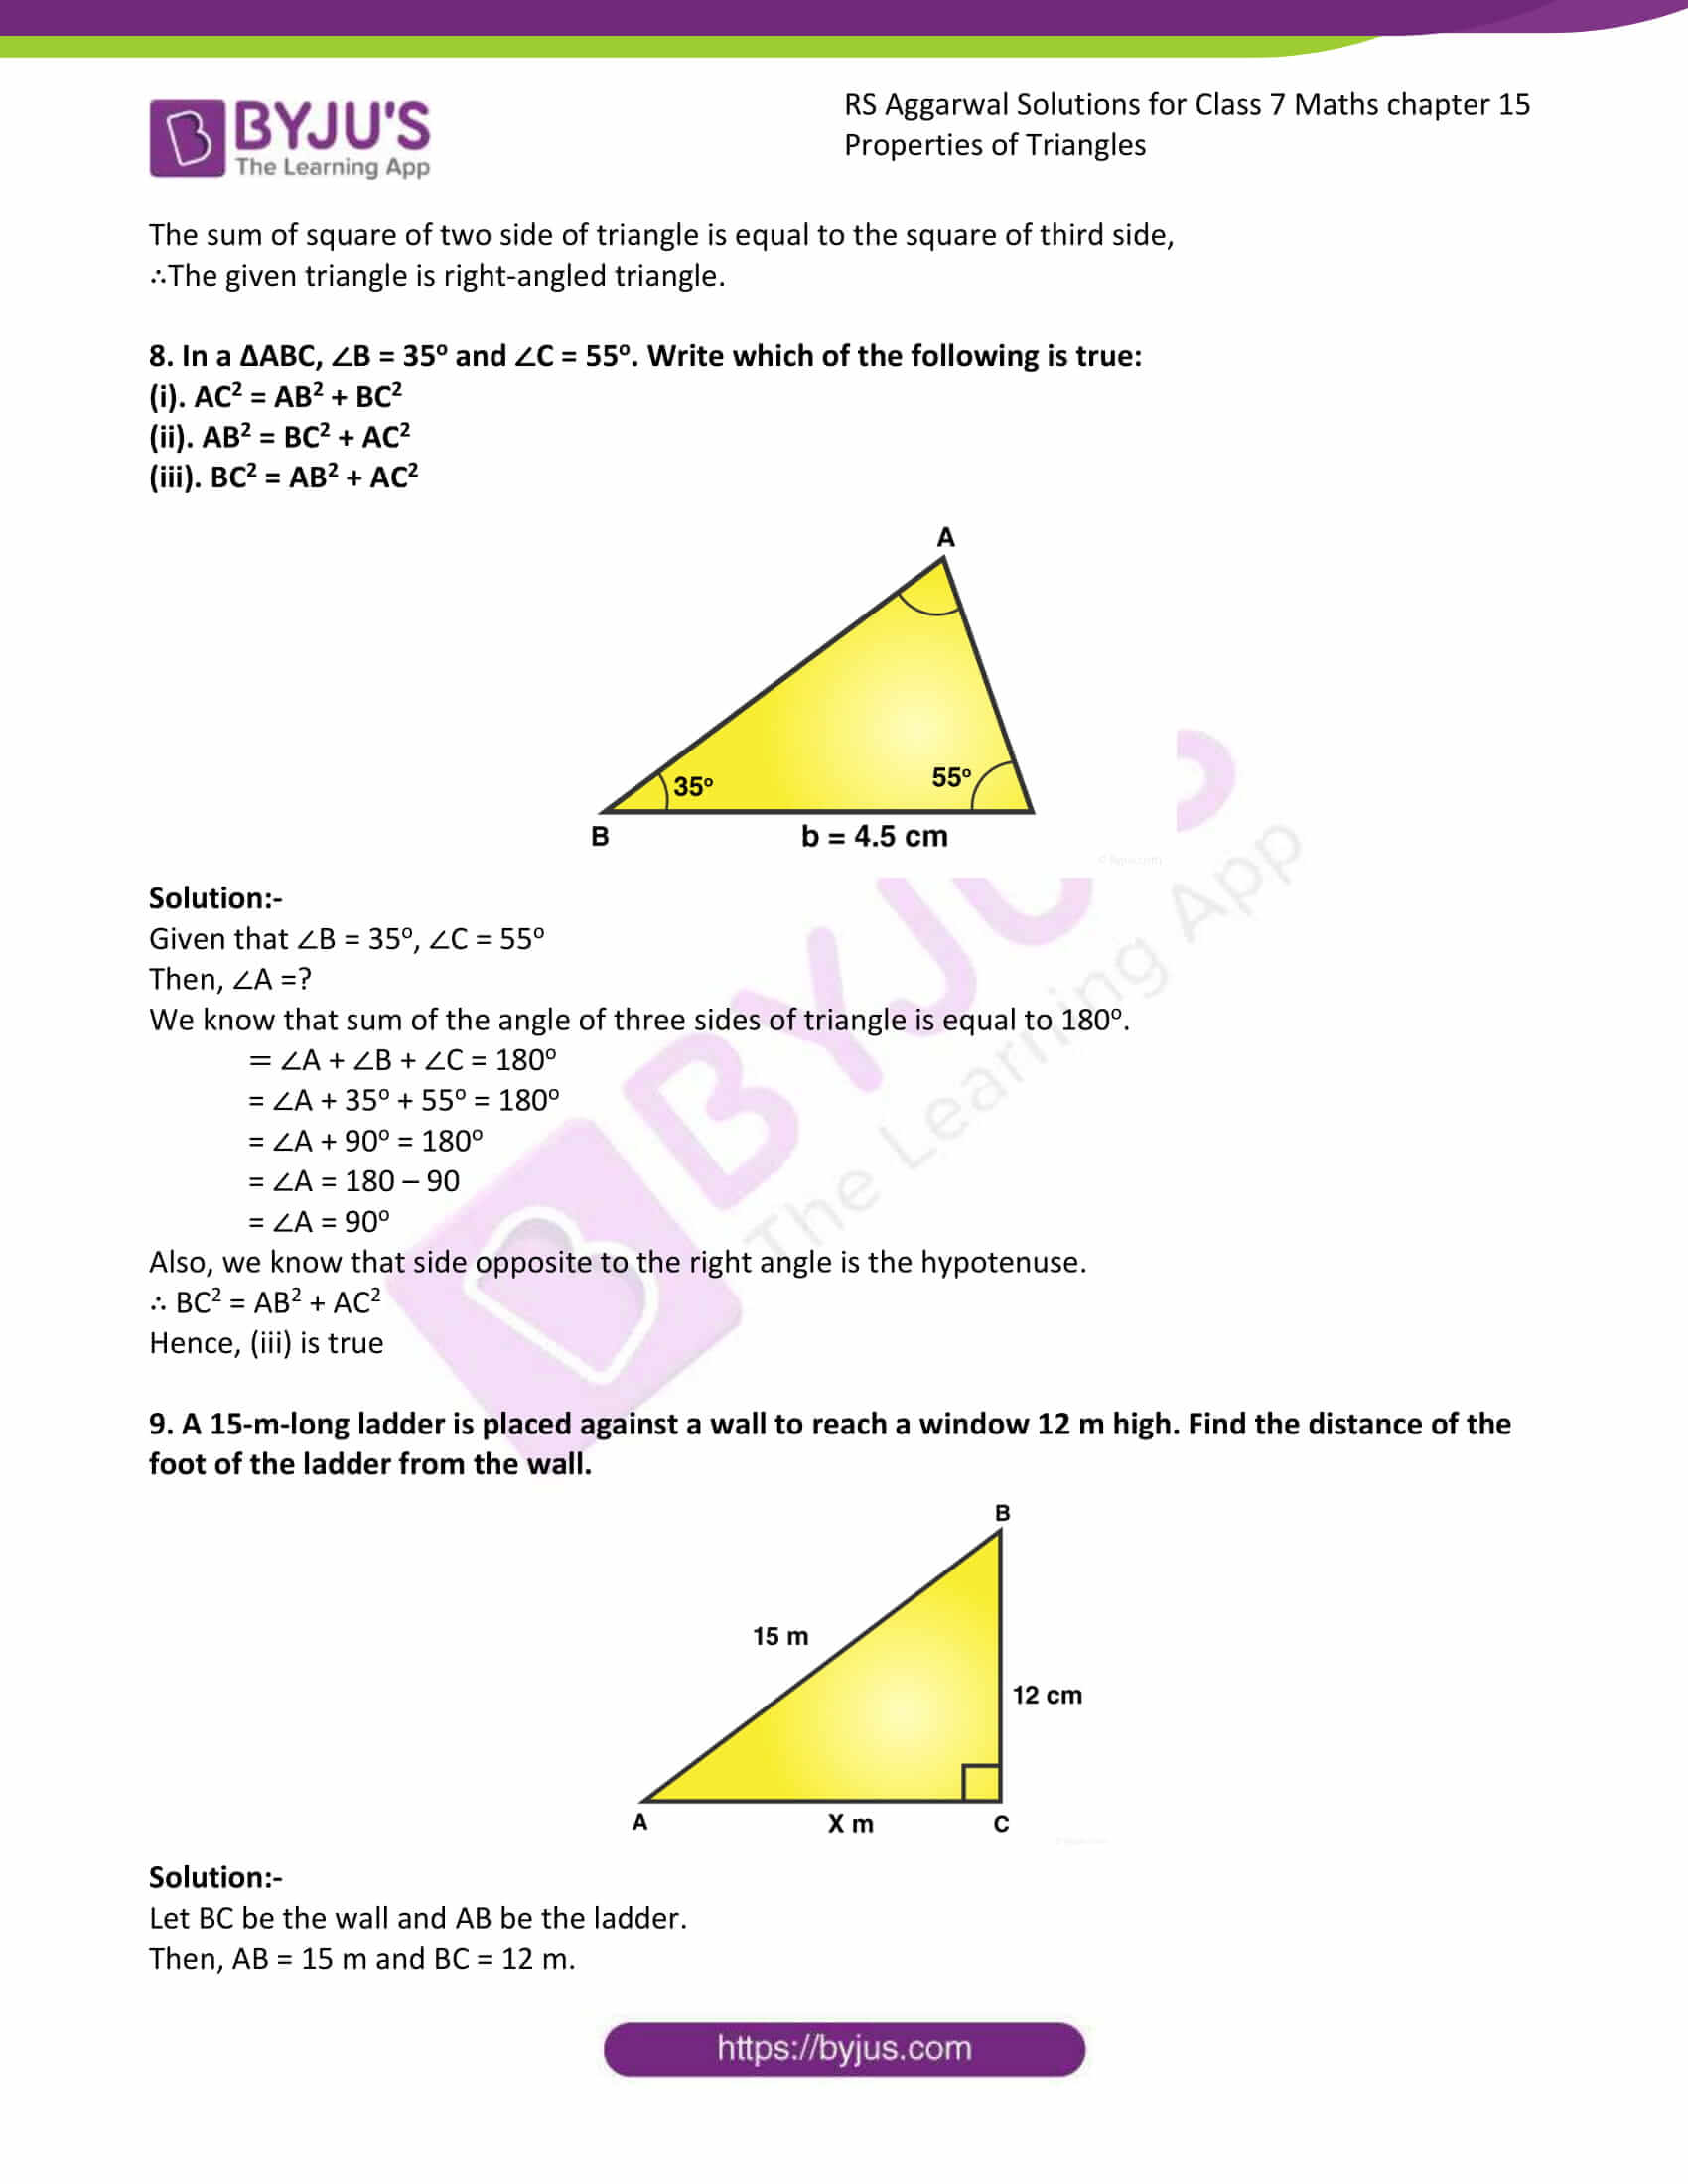 RS Aggarwal Solutions Class 7 Maths Chapter 15 Free Solutions 13